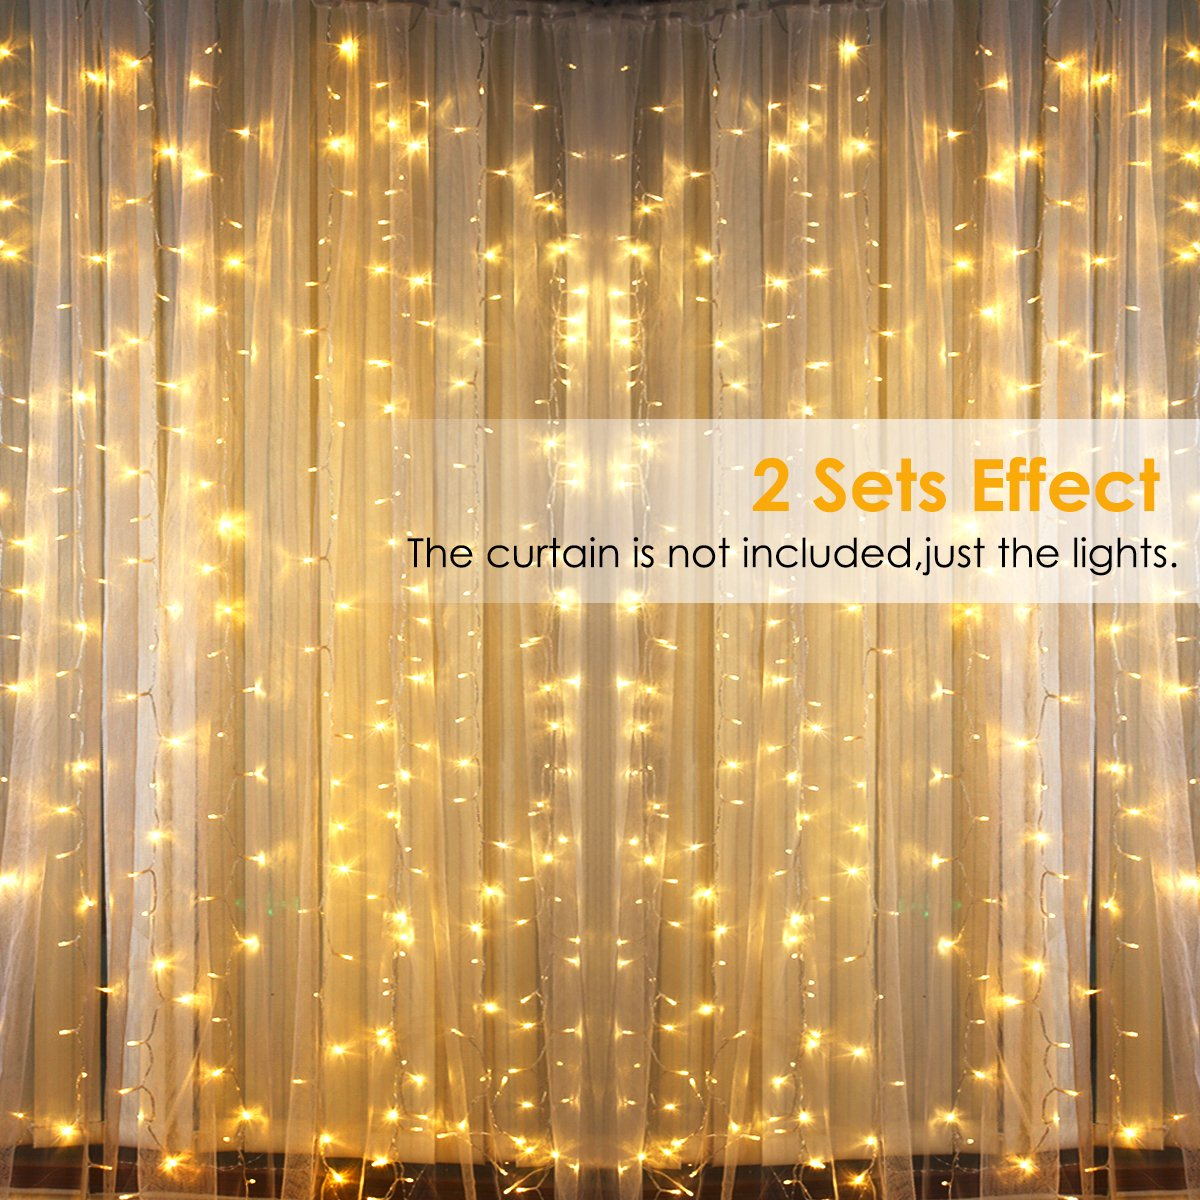 GDEALER 300 Led Window Curtain Lights with Timer,Remote Control String Lights Fairy Lights for Wedding Party Bedroom,6.6x6.6ft Hanging Lights Twinkle Lights Christmas Lights Wall Decor Warm White by GDEALER (Image #7)